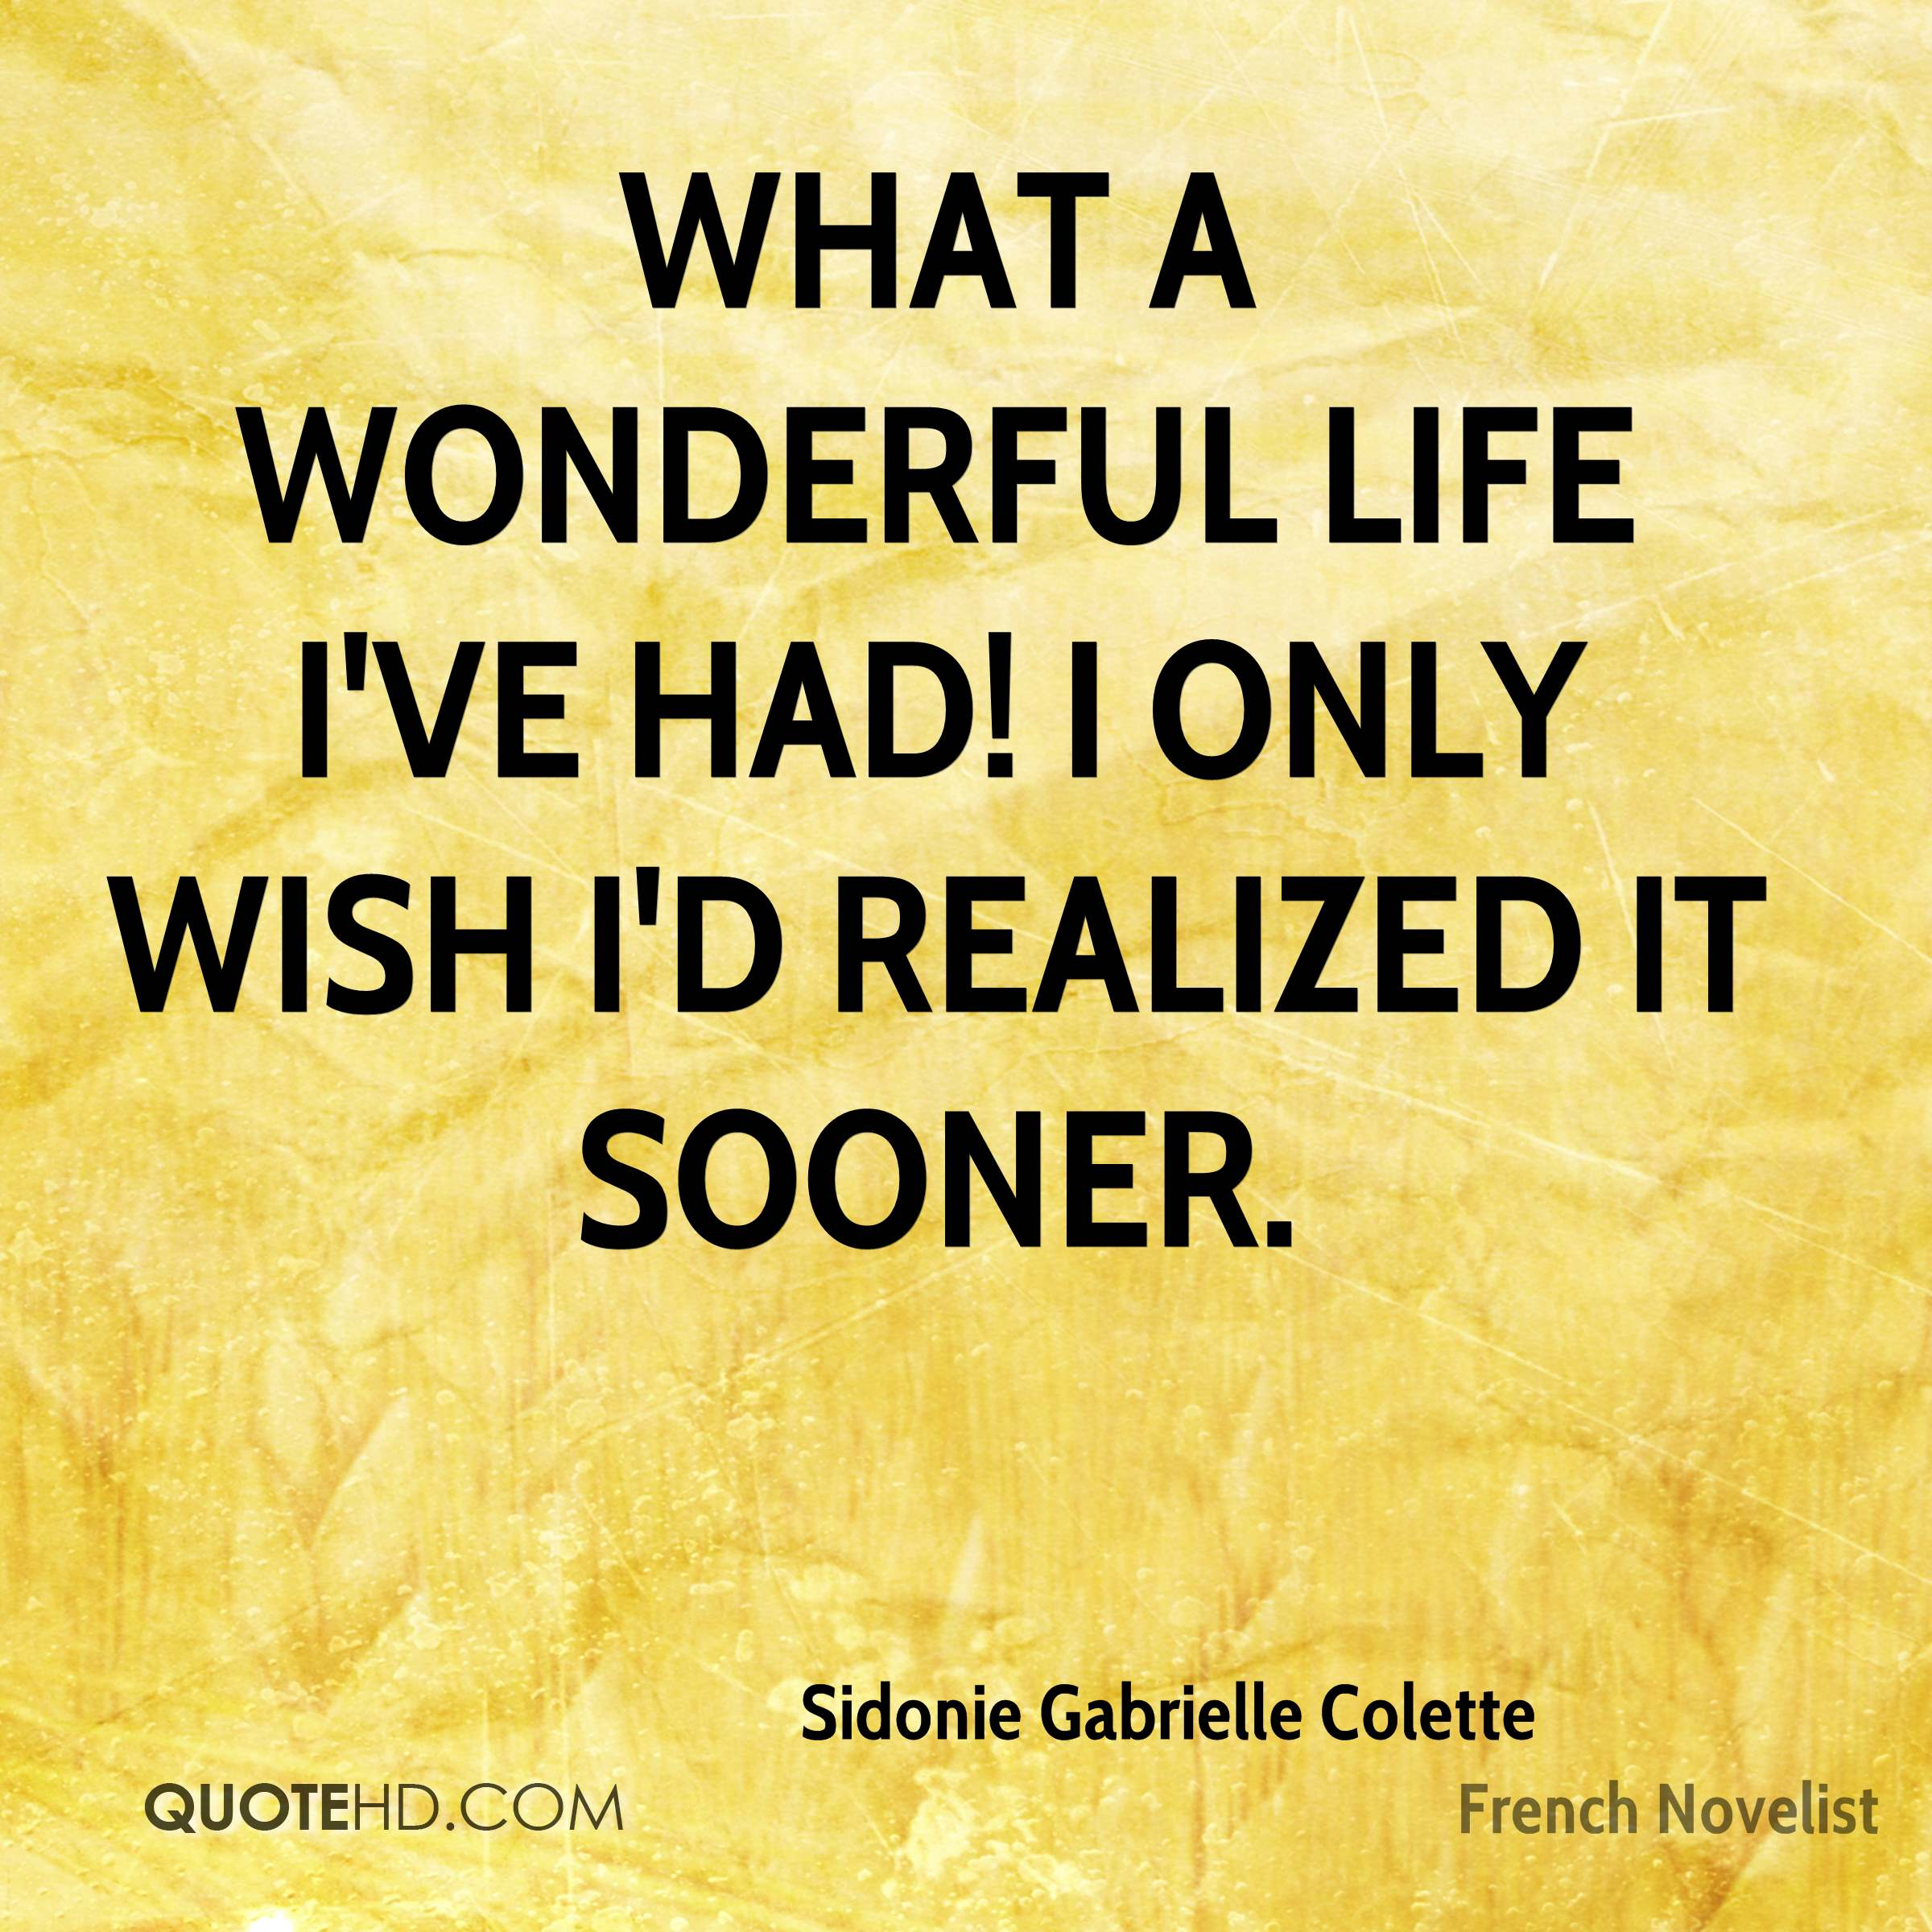 Wonderful Life Quotes: Sidonie Gabrielle Colette Life Quotes